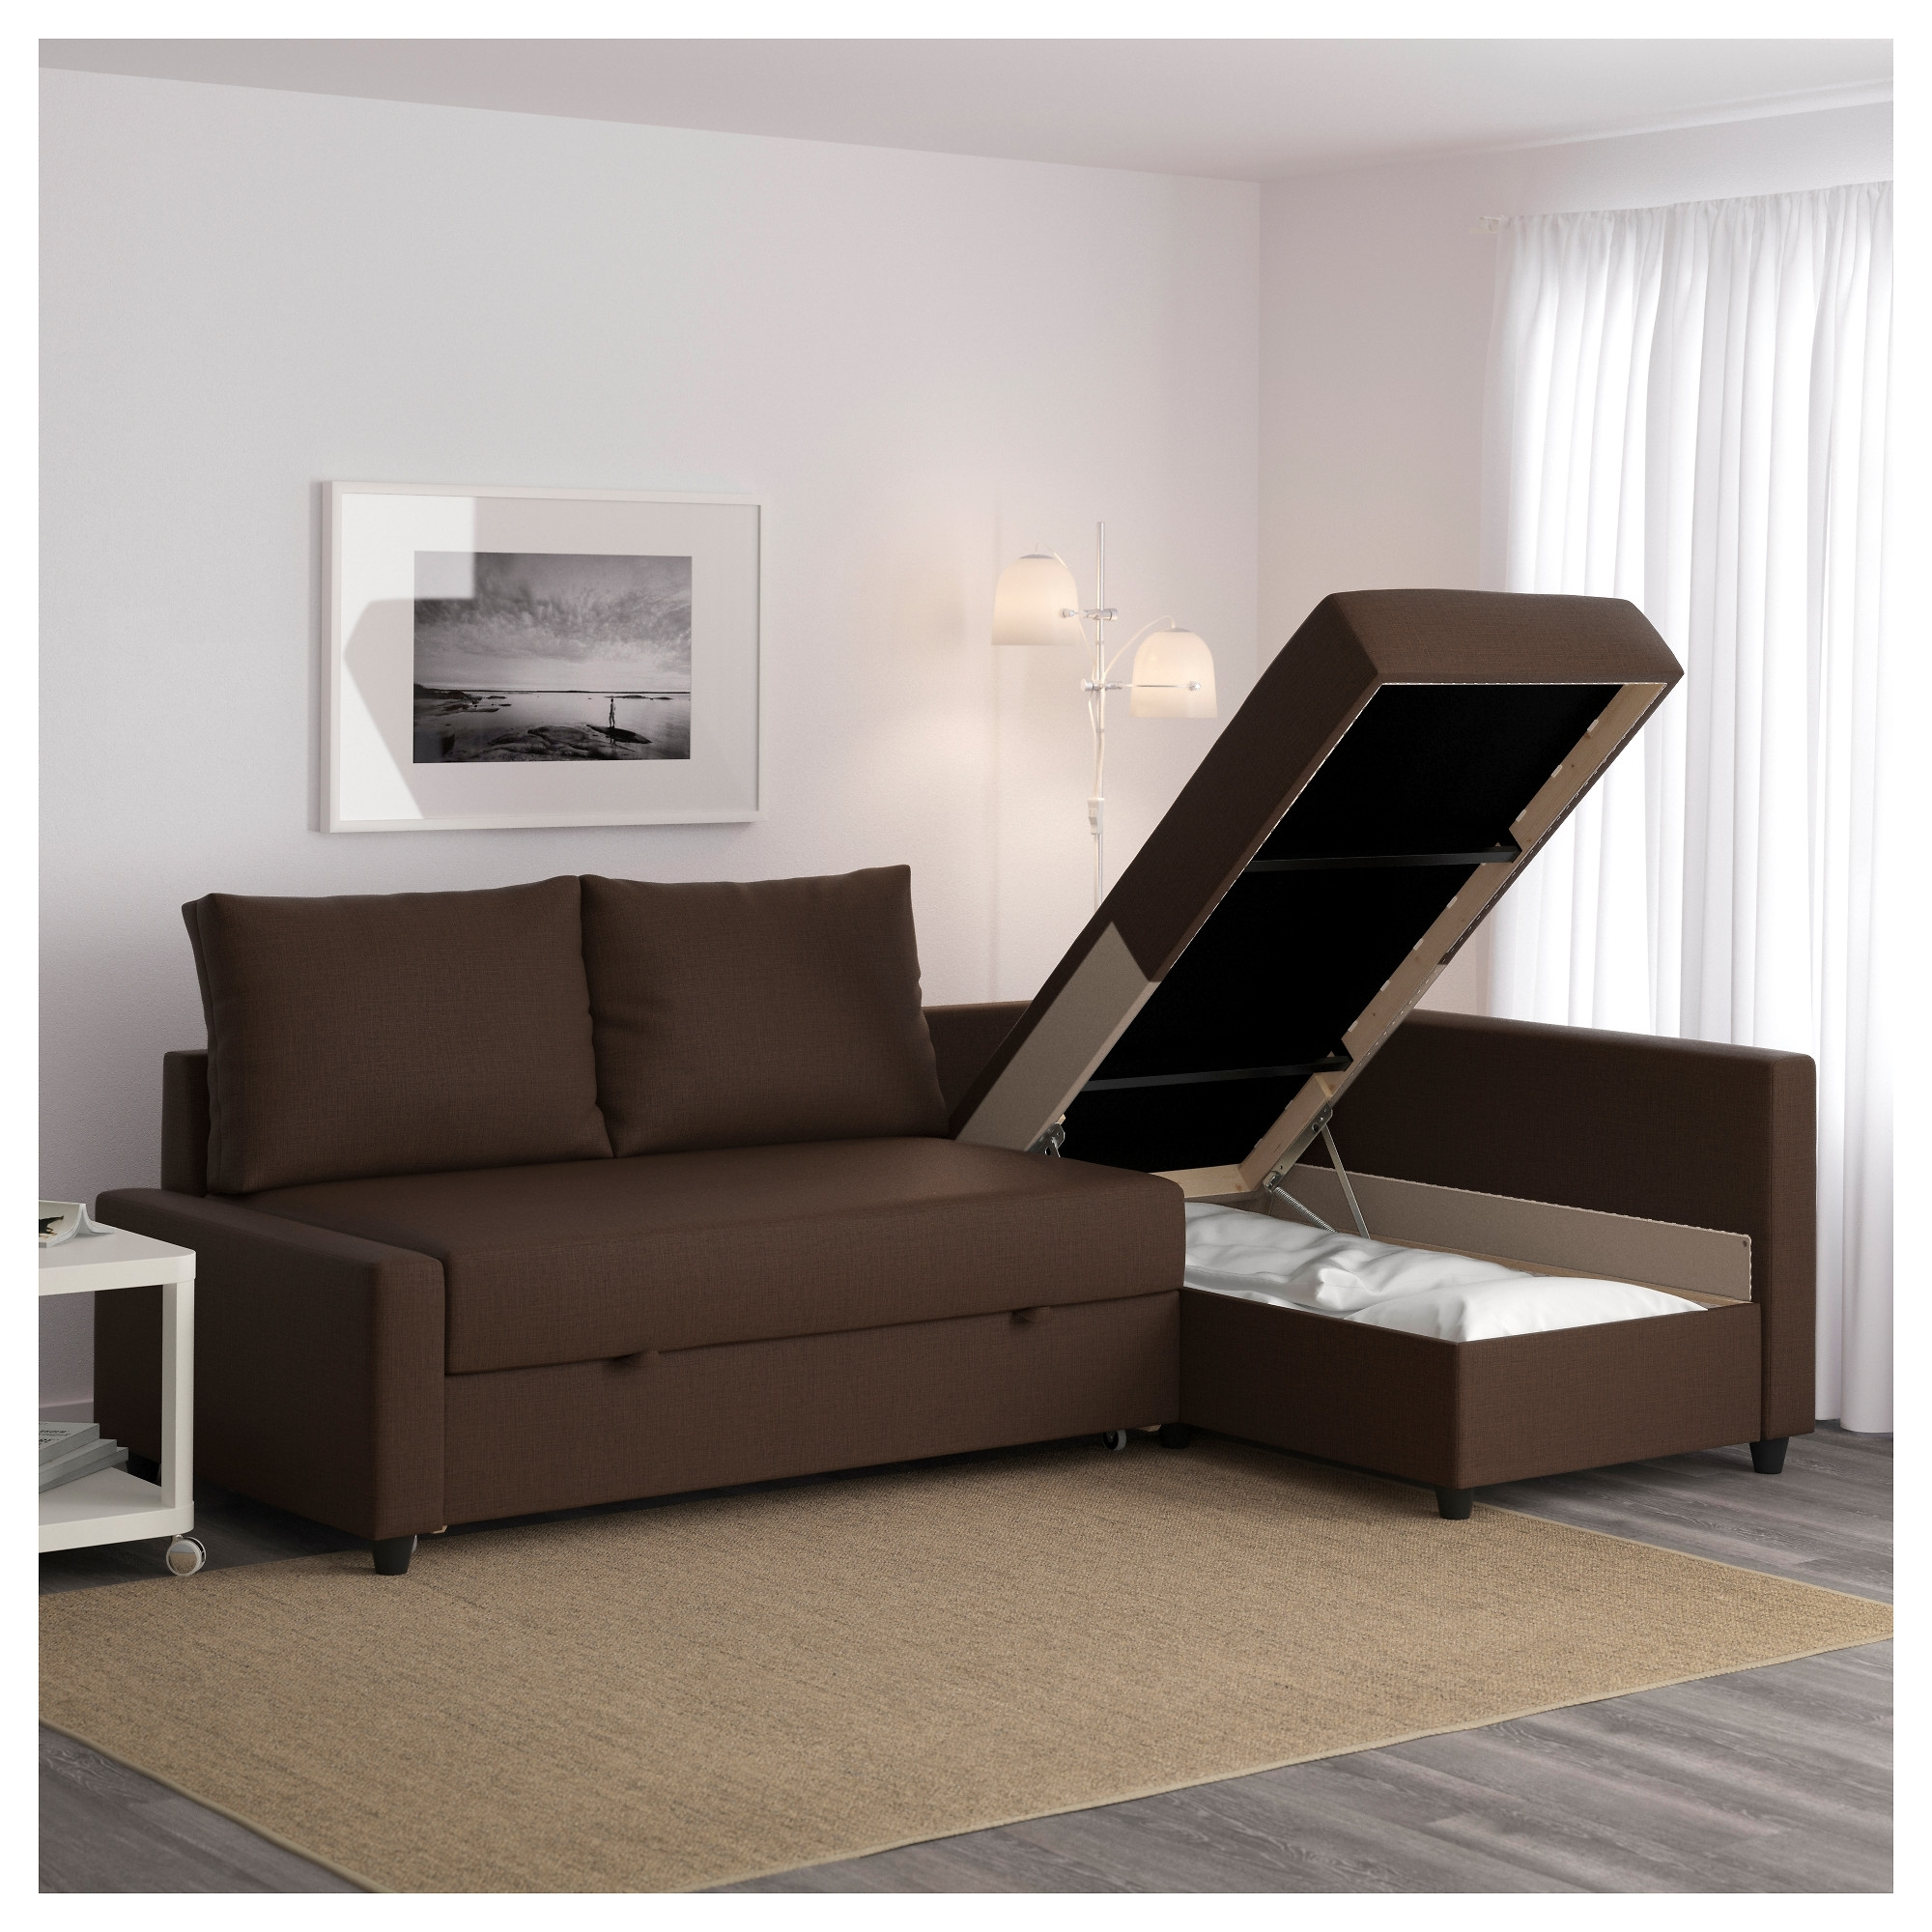 Well Known Friheten Corner Sofa Bed With Storage Skiftebo Brown – Ikea With Regard To Ikea Corner Sofas With Storage (View 12 of 15)